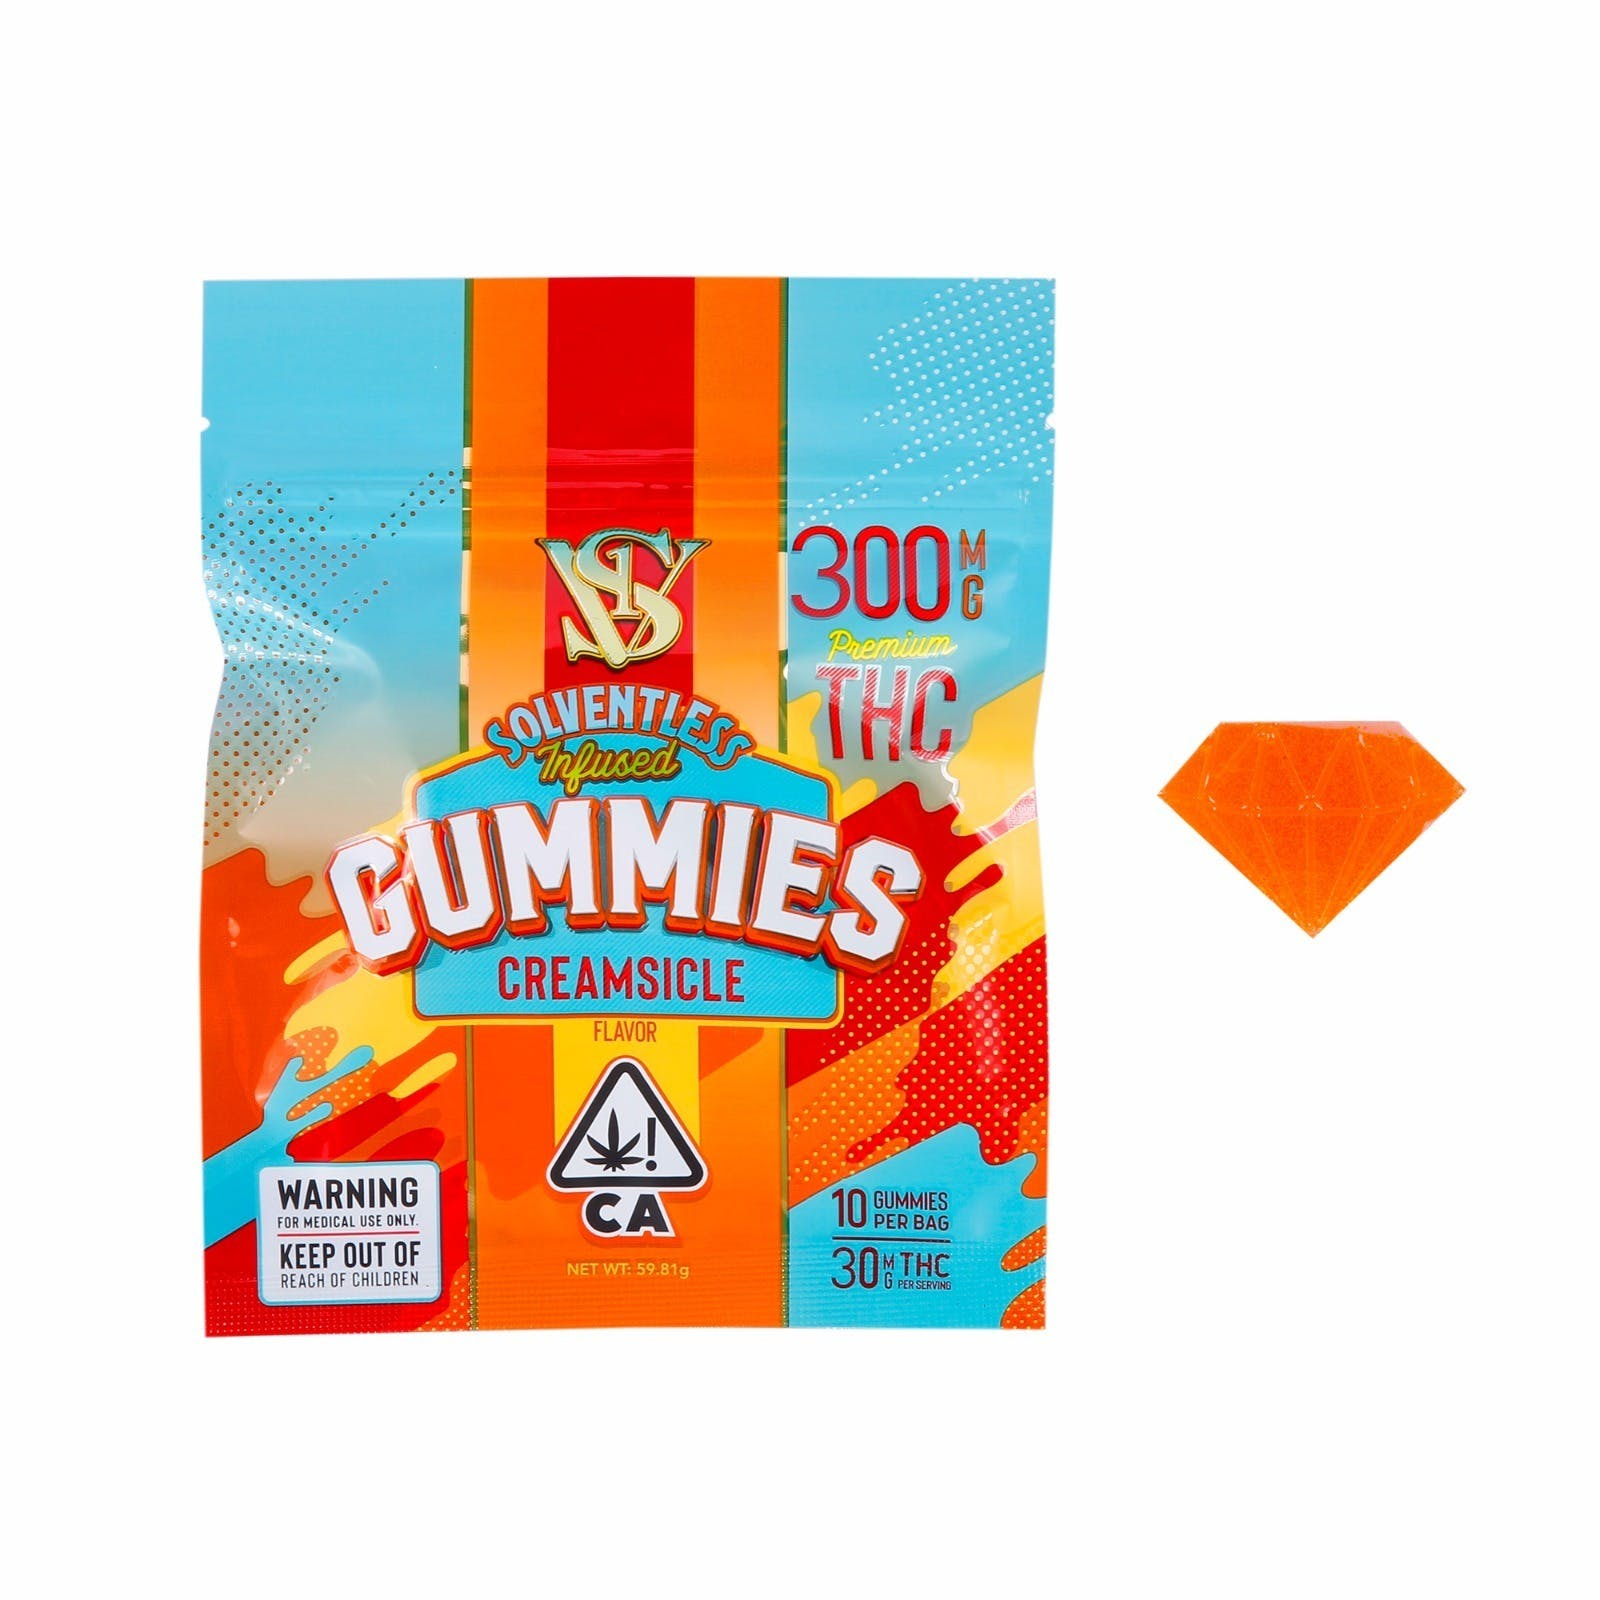 GUMMIES - CREAMSICLE